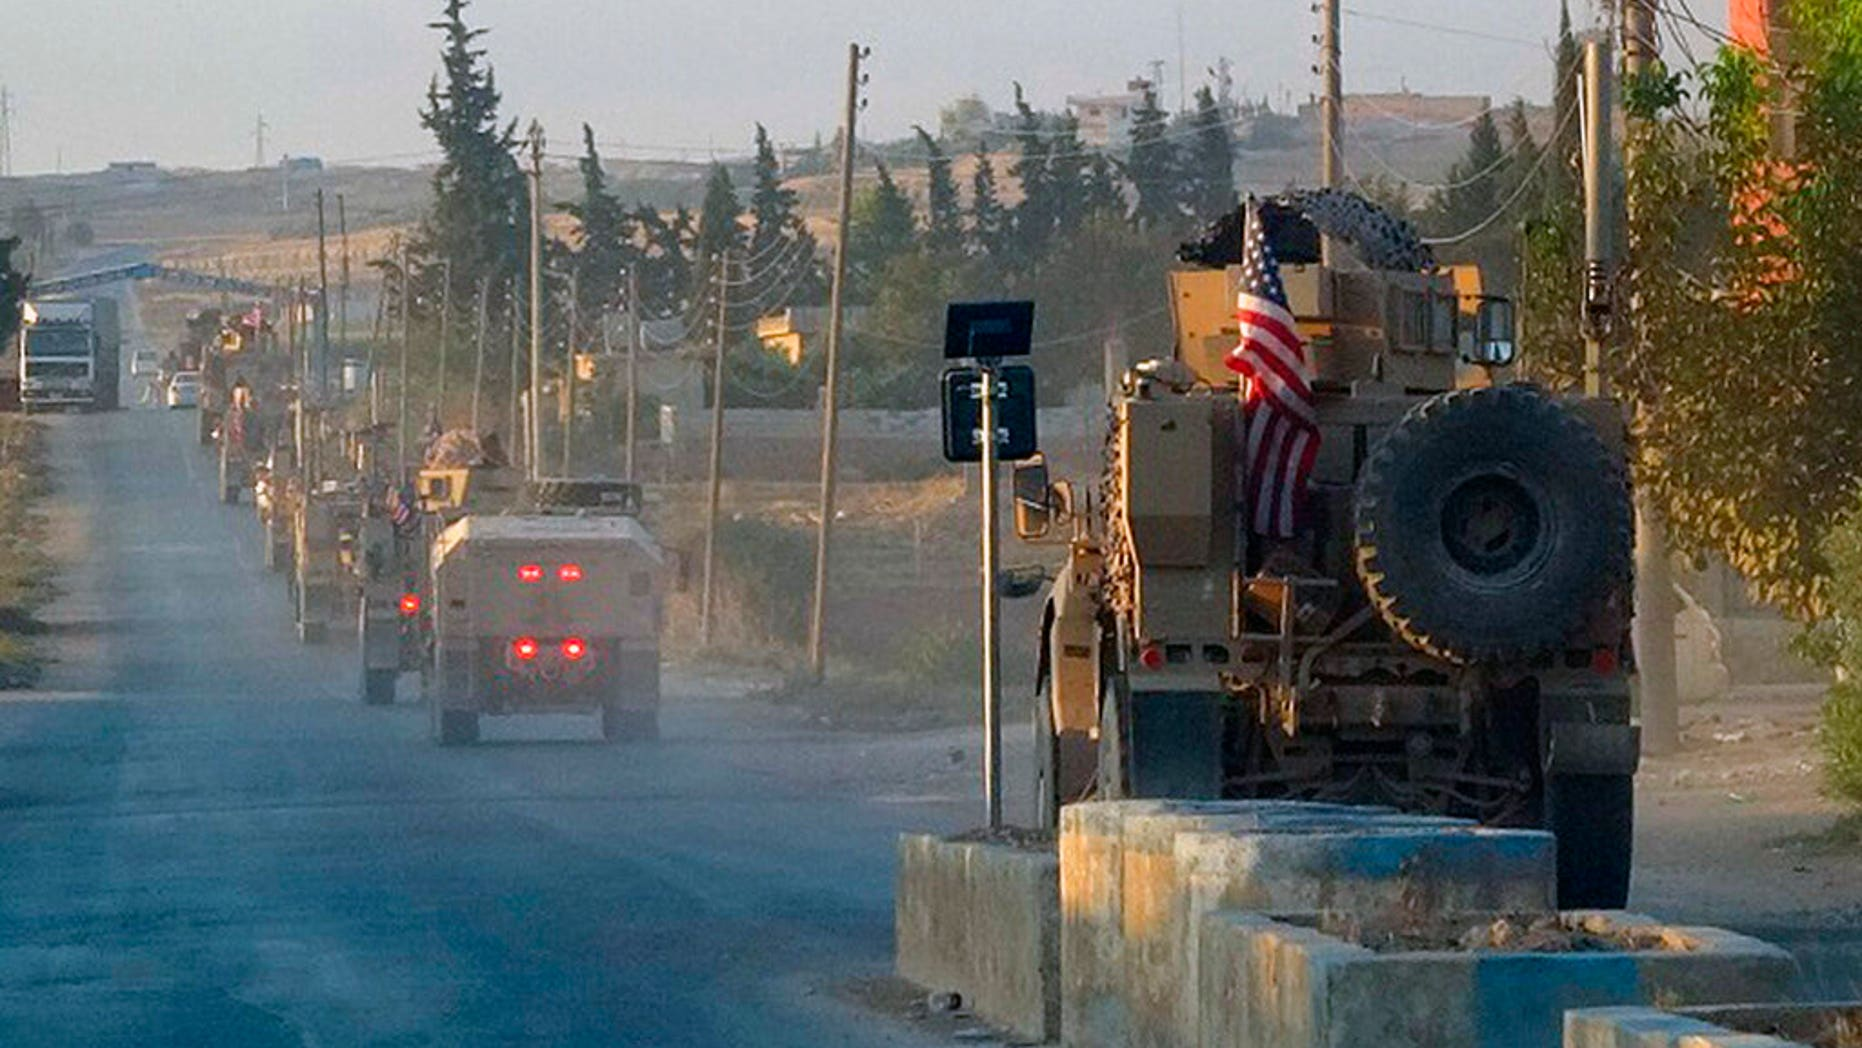 In this image provided by Hawar News Agency, ANHA, U.S. military vehicles travel down a main road in northeast Syria, Monday, Oct. 7, 2019. U.S.-backed Kurdish-led forces in Syria said American troops began withdrawing Monday from their positions along Turkey's border in northeastern Syria, ahead of an anticipated Turkish invasion. (ANHA via AP)